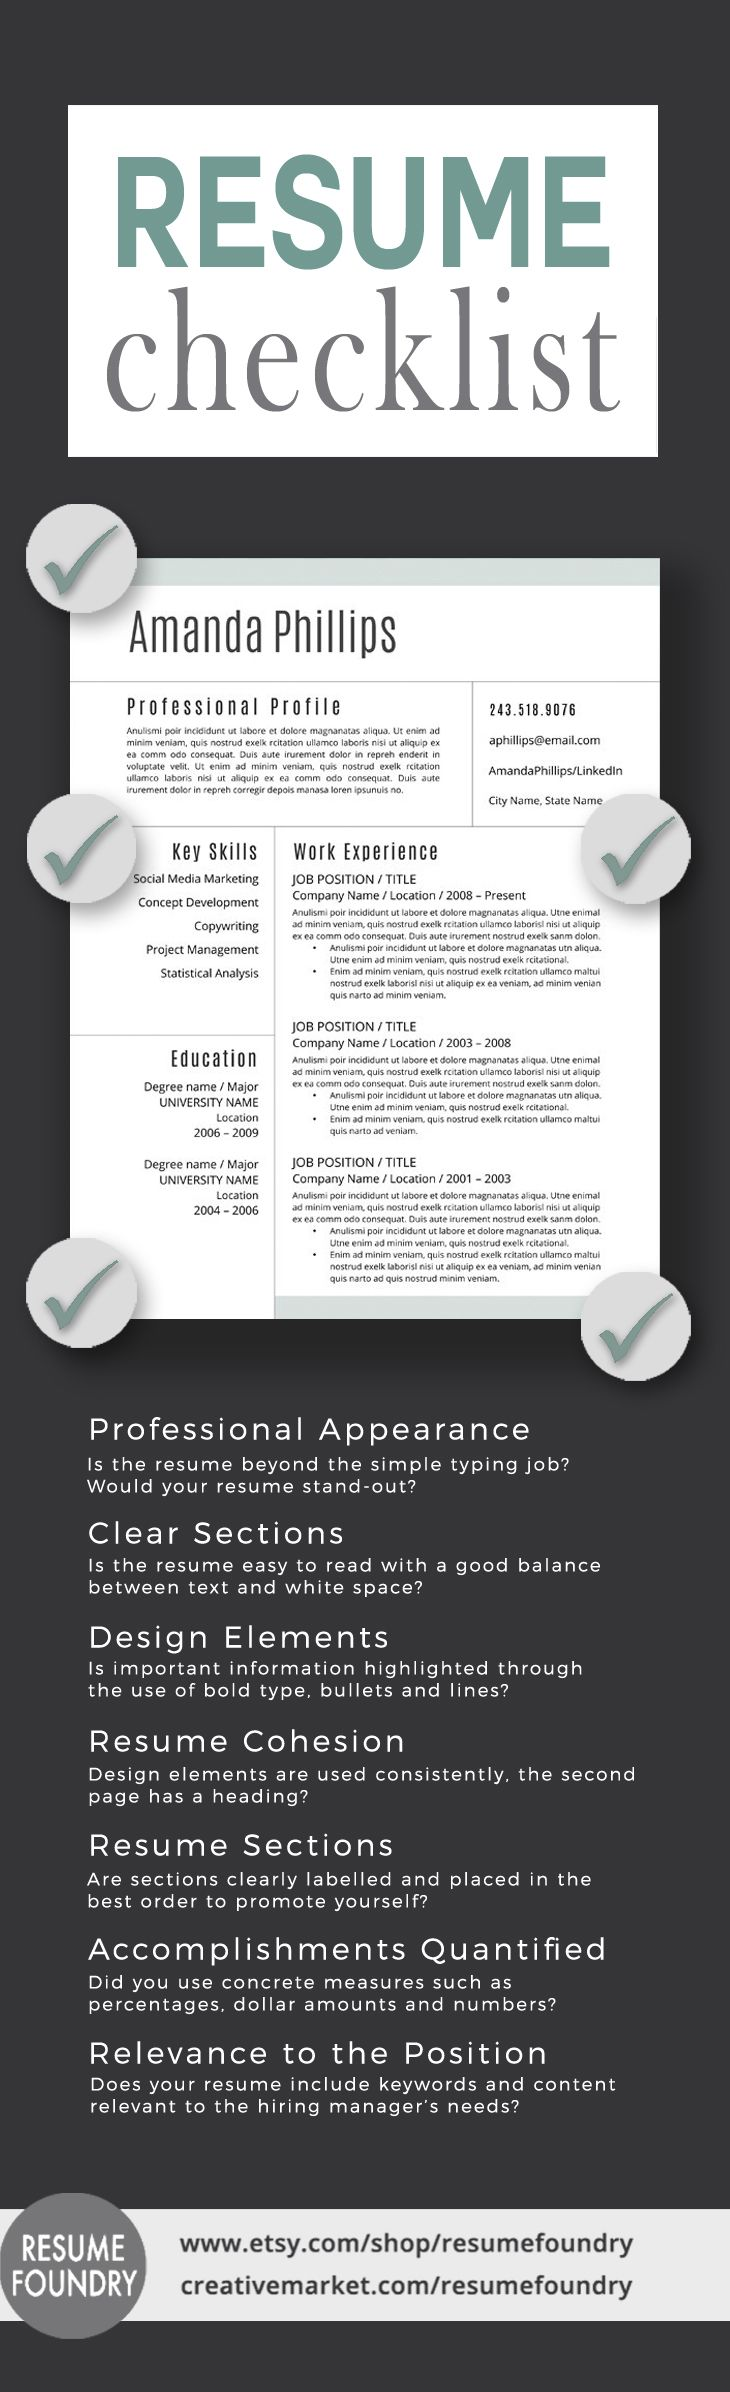 Read this before sending out your resume! | CV | Pinterest ...